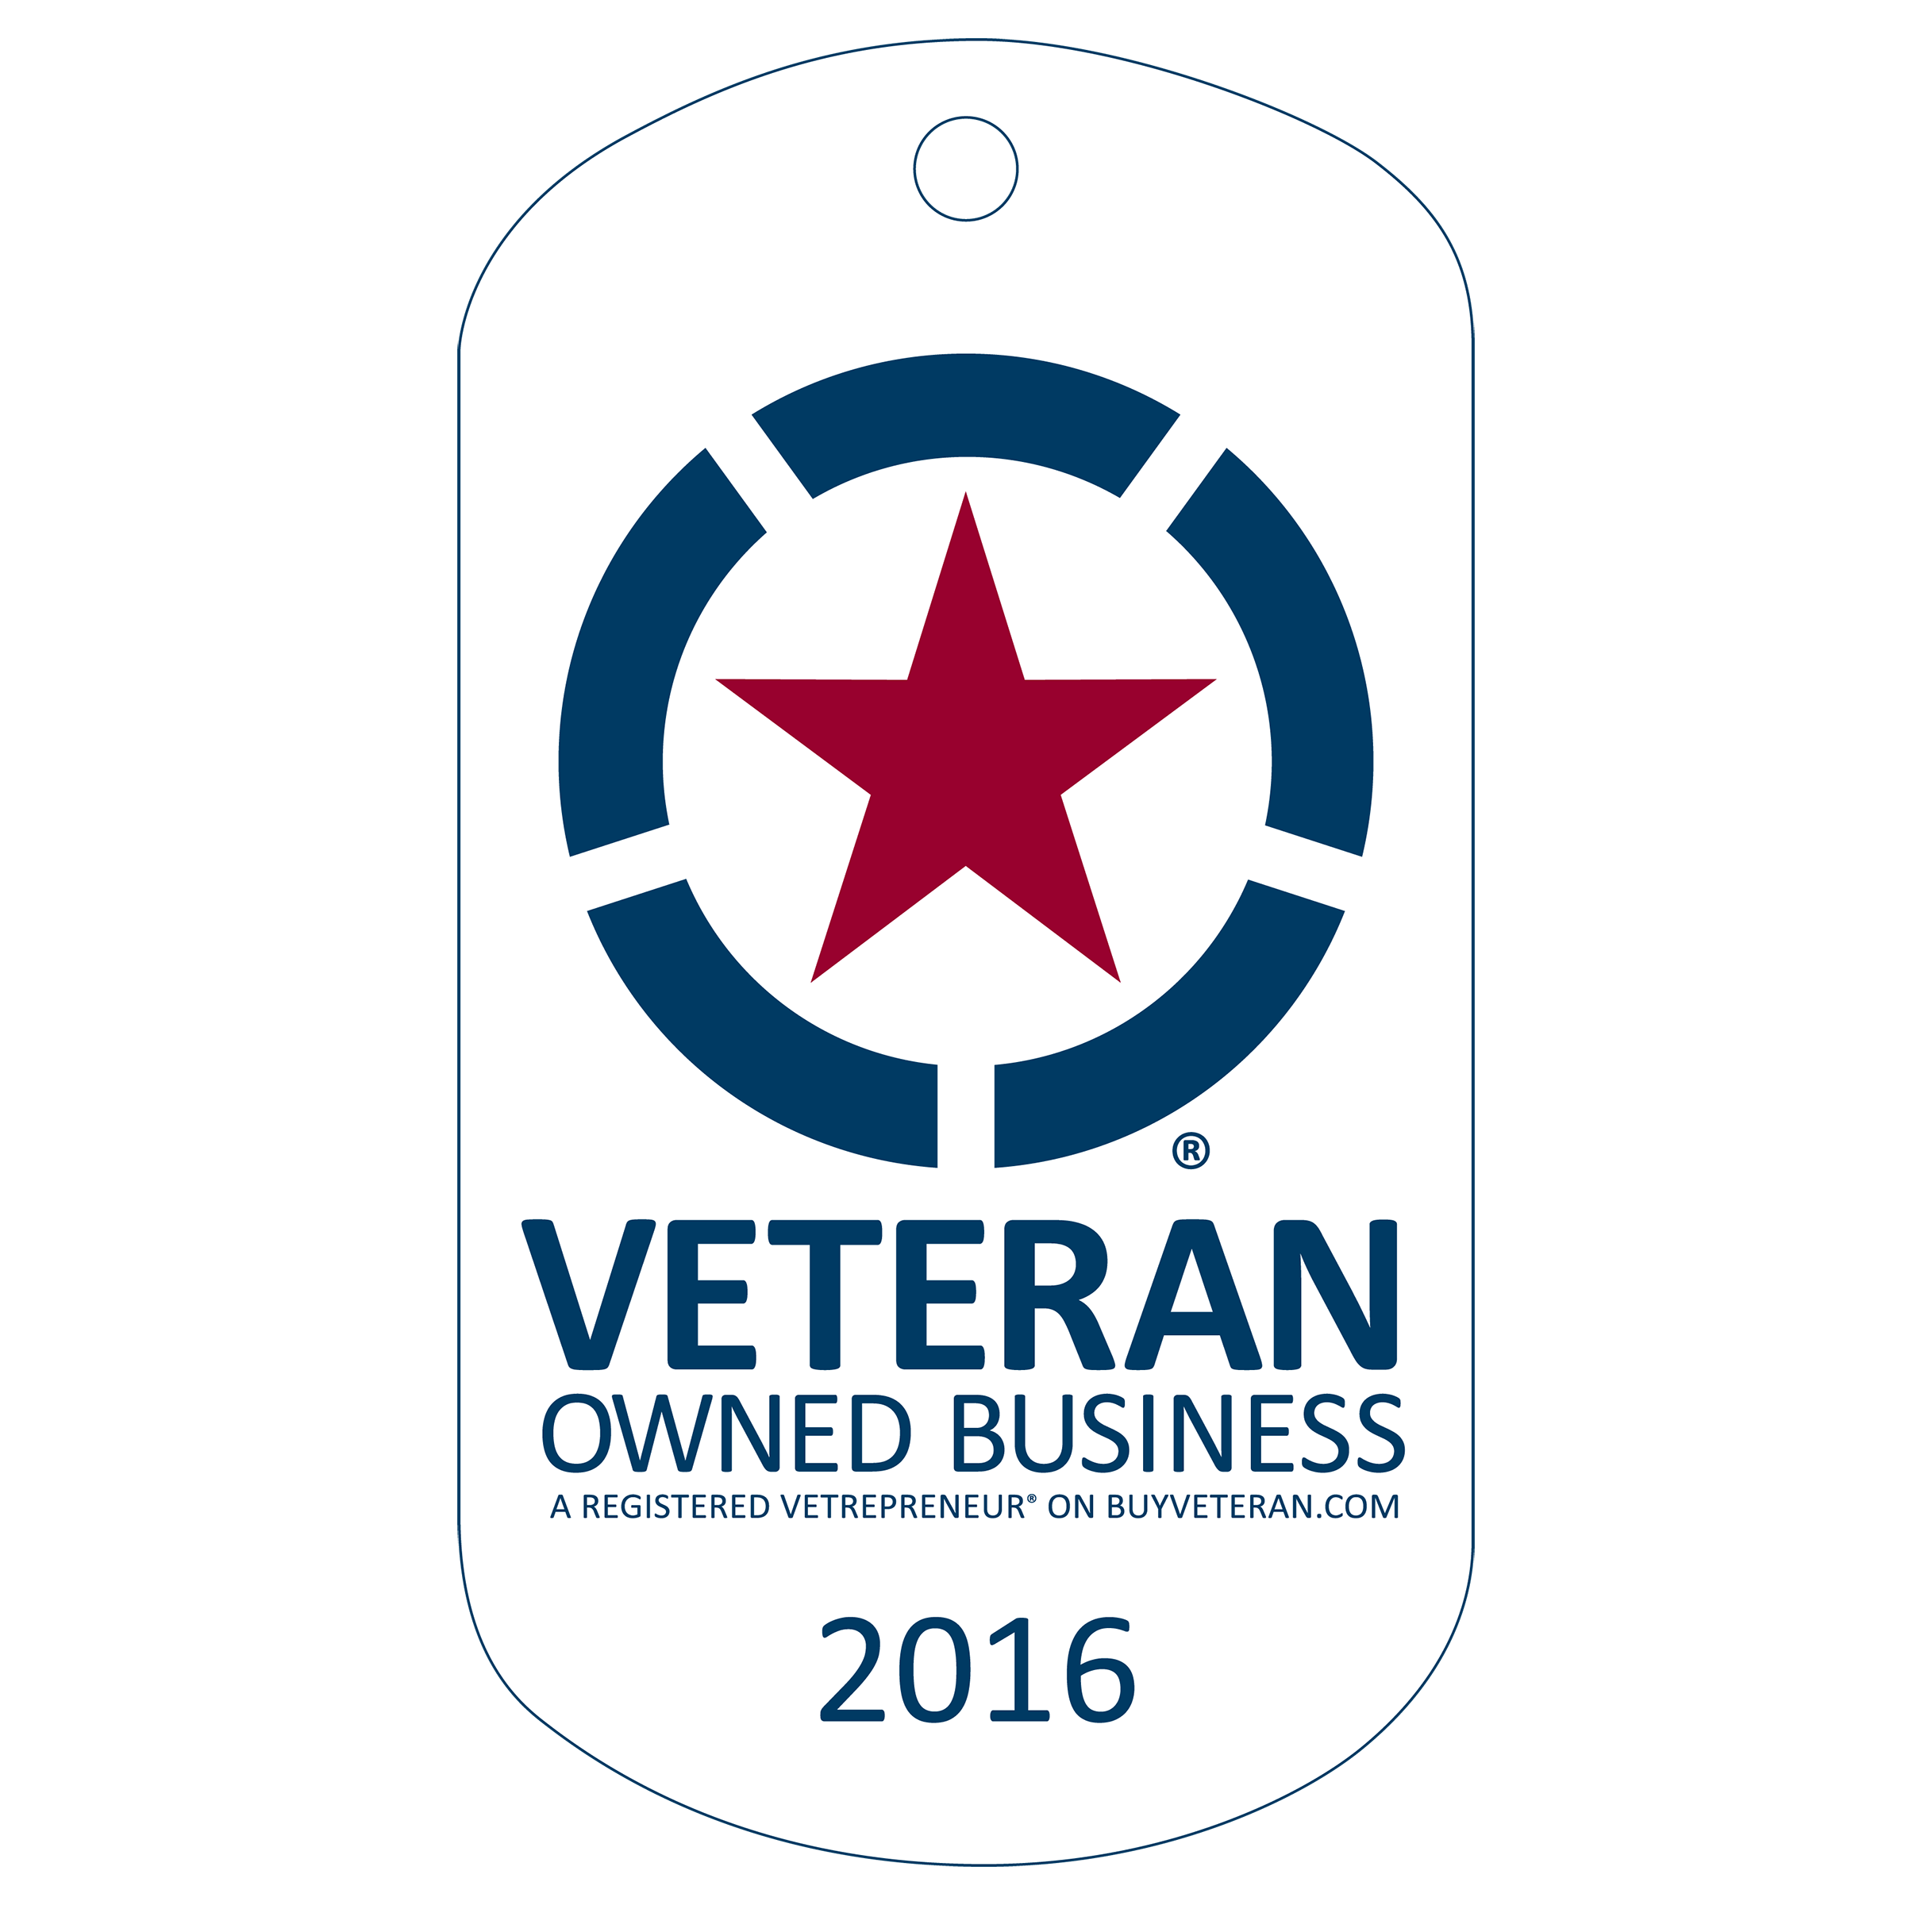 Veteran owned business png. Start a g i